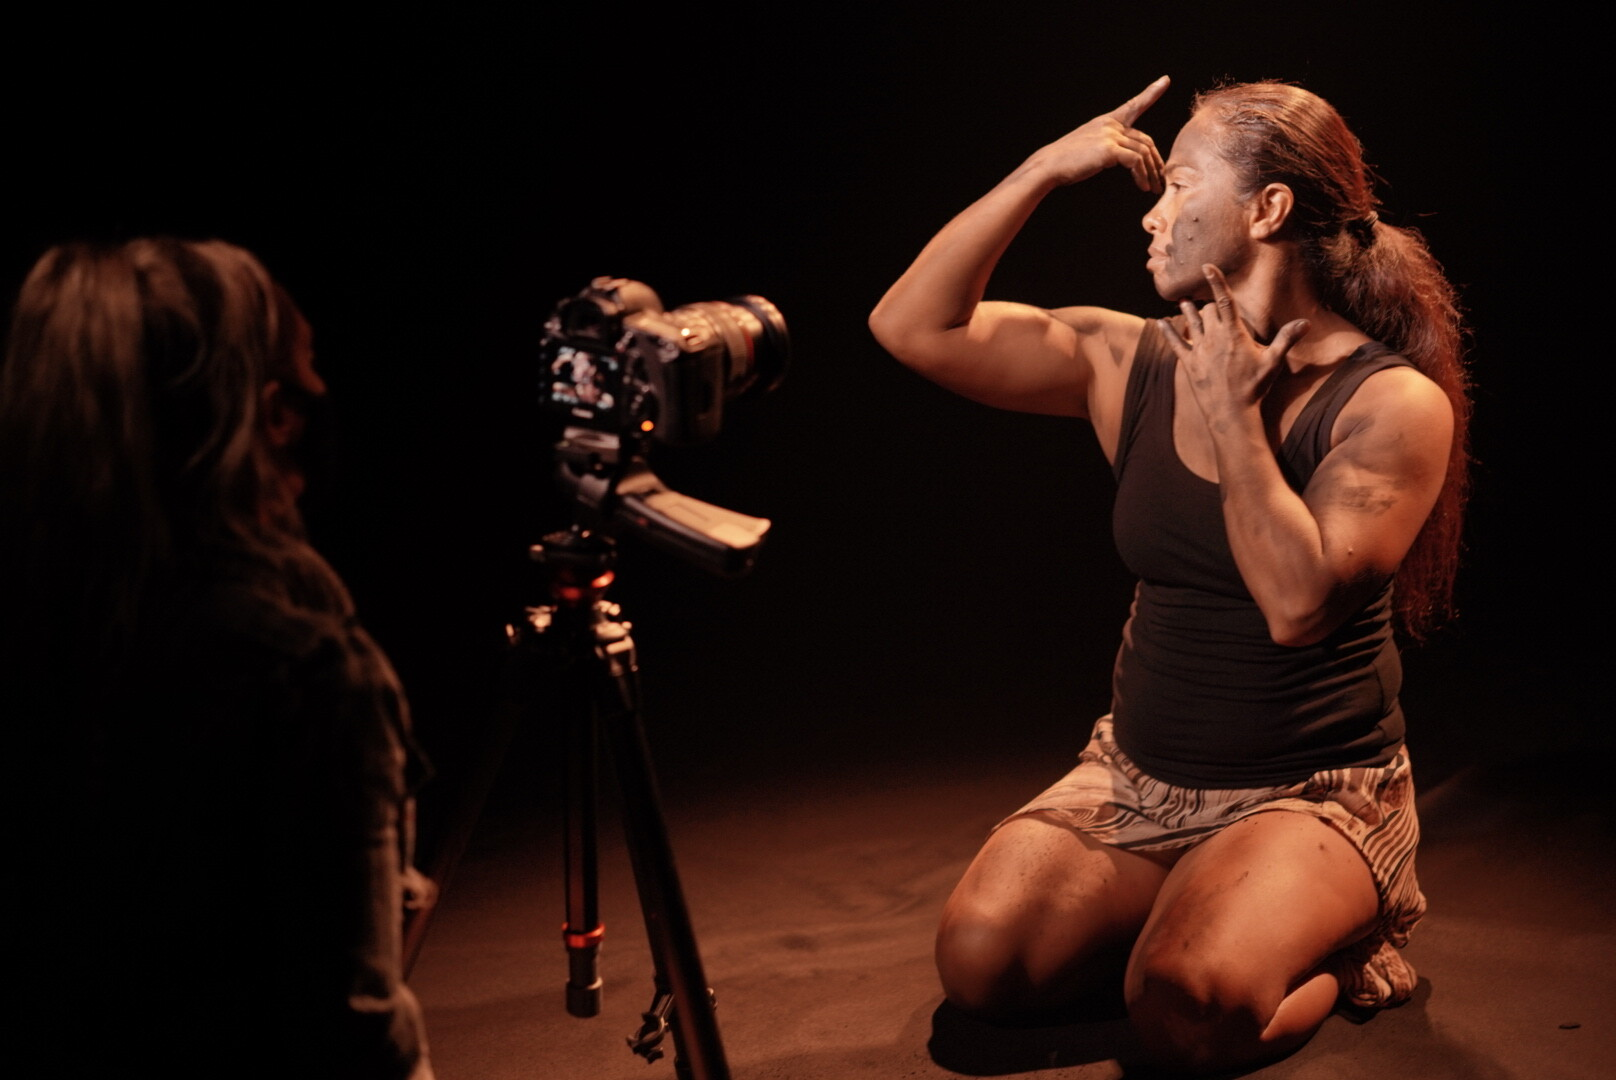 An indigenous woman performs a dance routine on her knees, framing her face with her hands, while being filmed